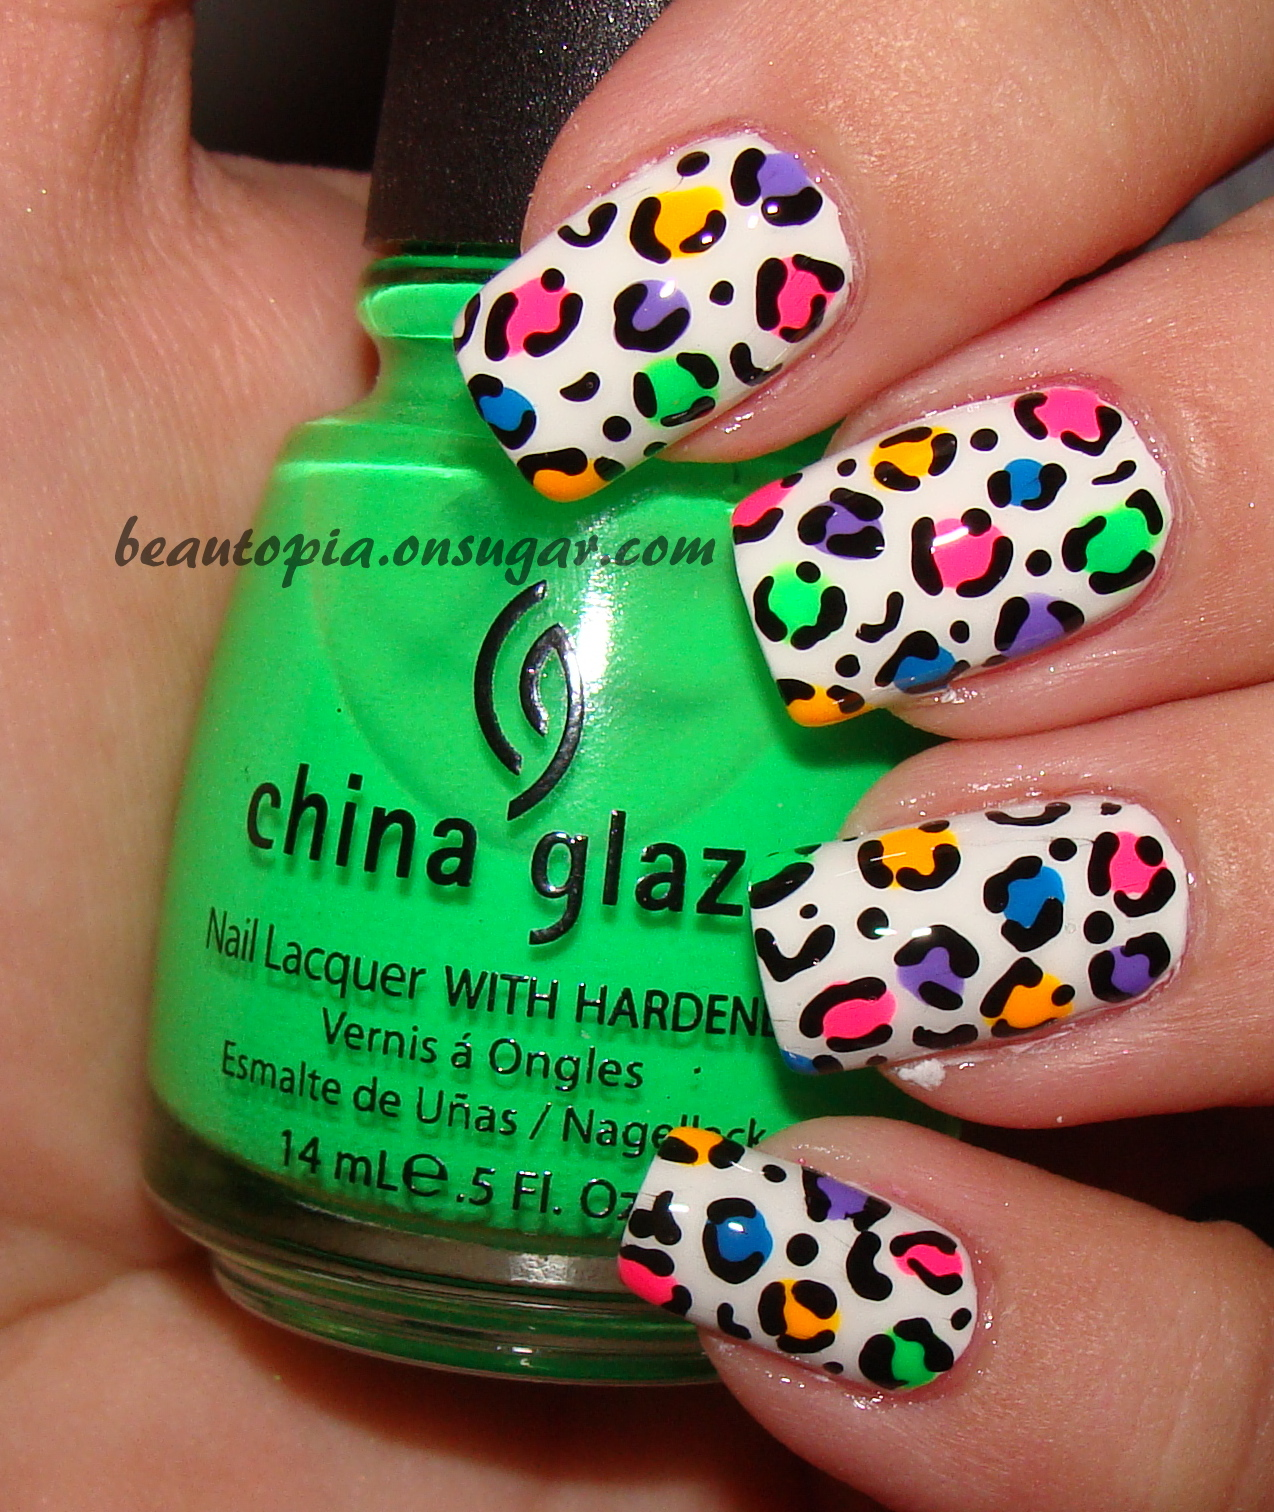 The modernization of nail design - One Quirky Blog